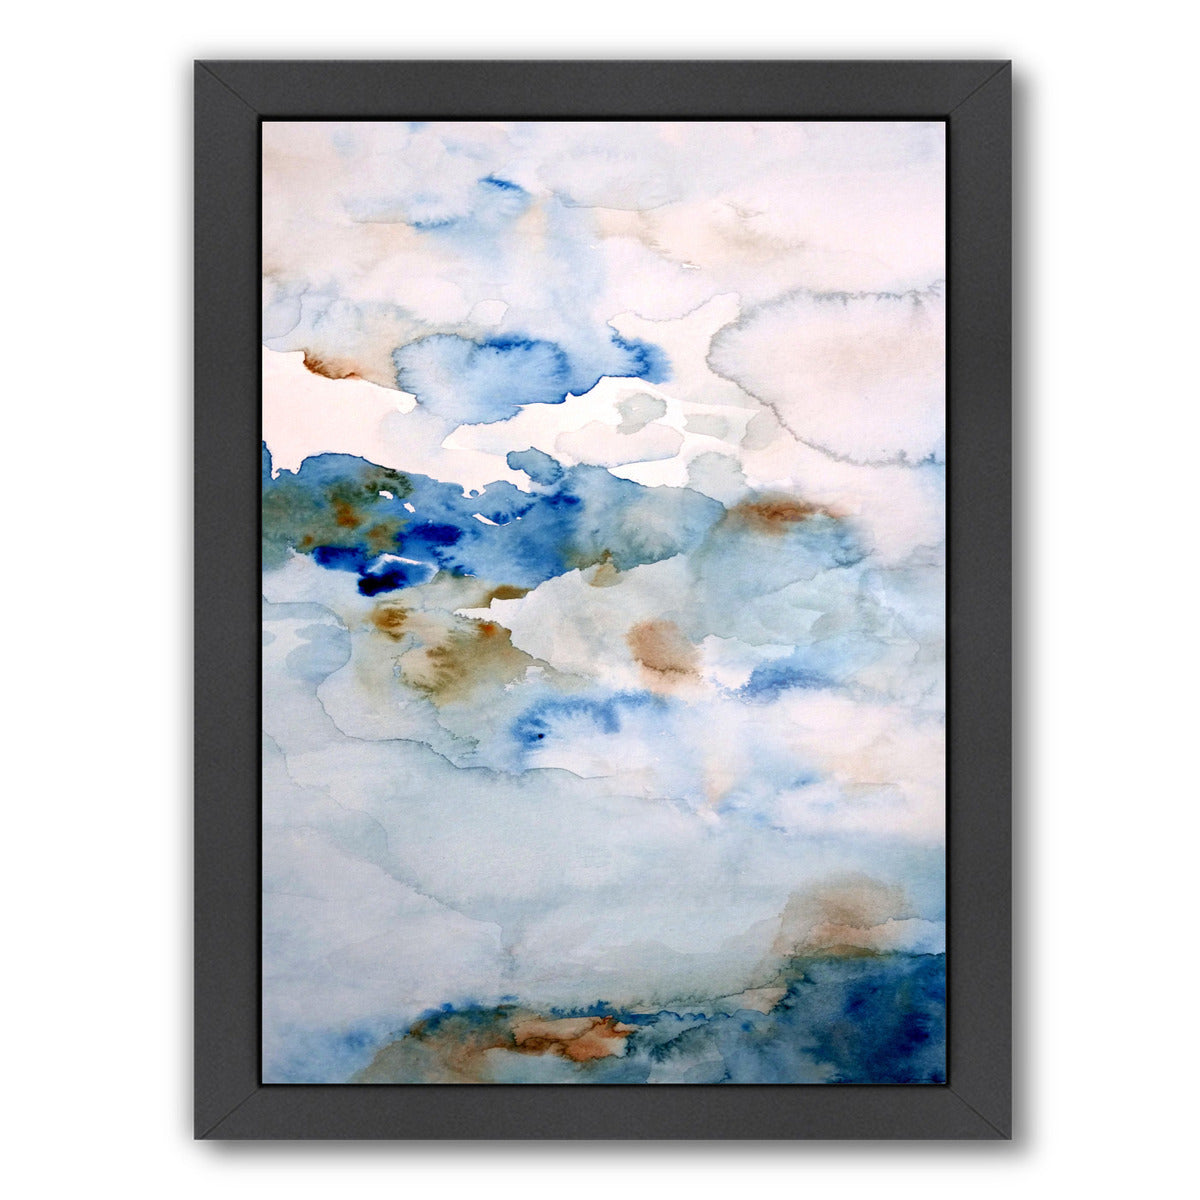 Up in the Clouds II by Hope Bainbridge - Black Framed Print - Wall Art - Americanflat